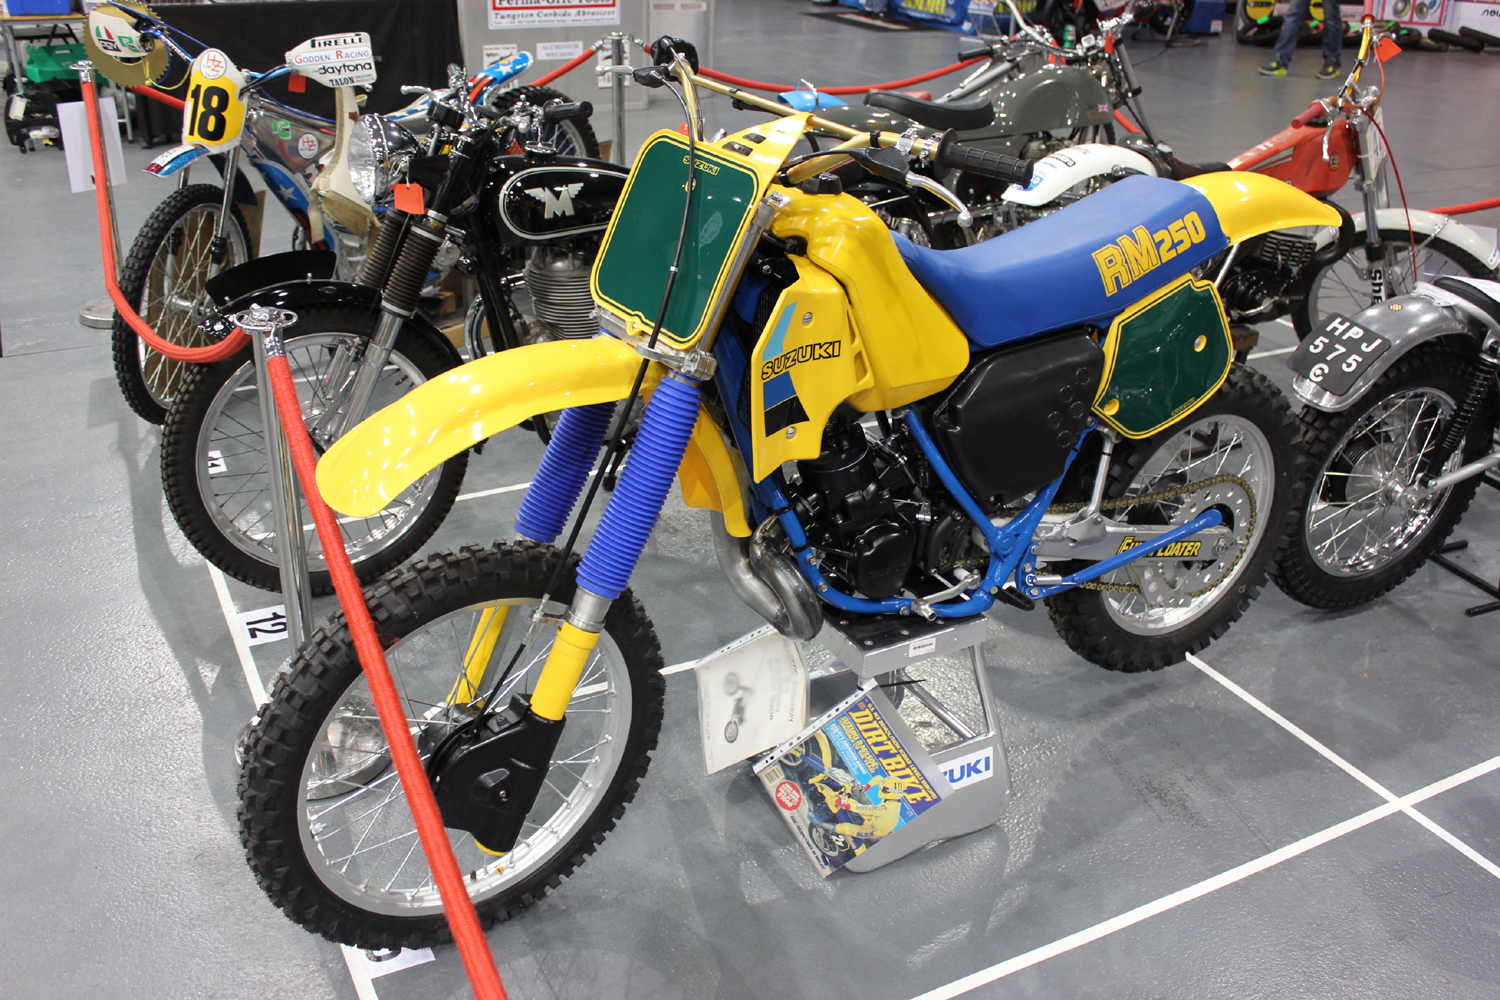 classicdirtbikerider.com-photo by Mr J-2015 Telford classic dirt bike show-1980s SUZUKI RM250 EVO BIKE